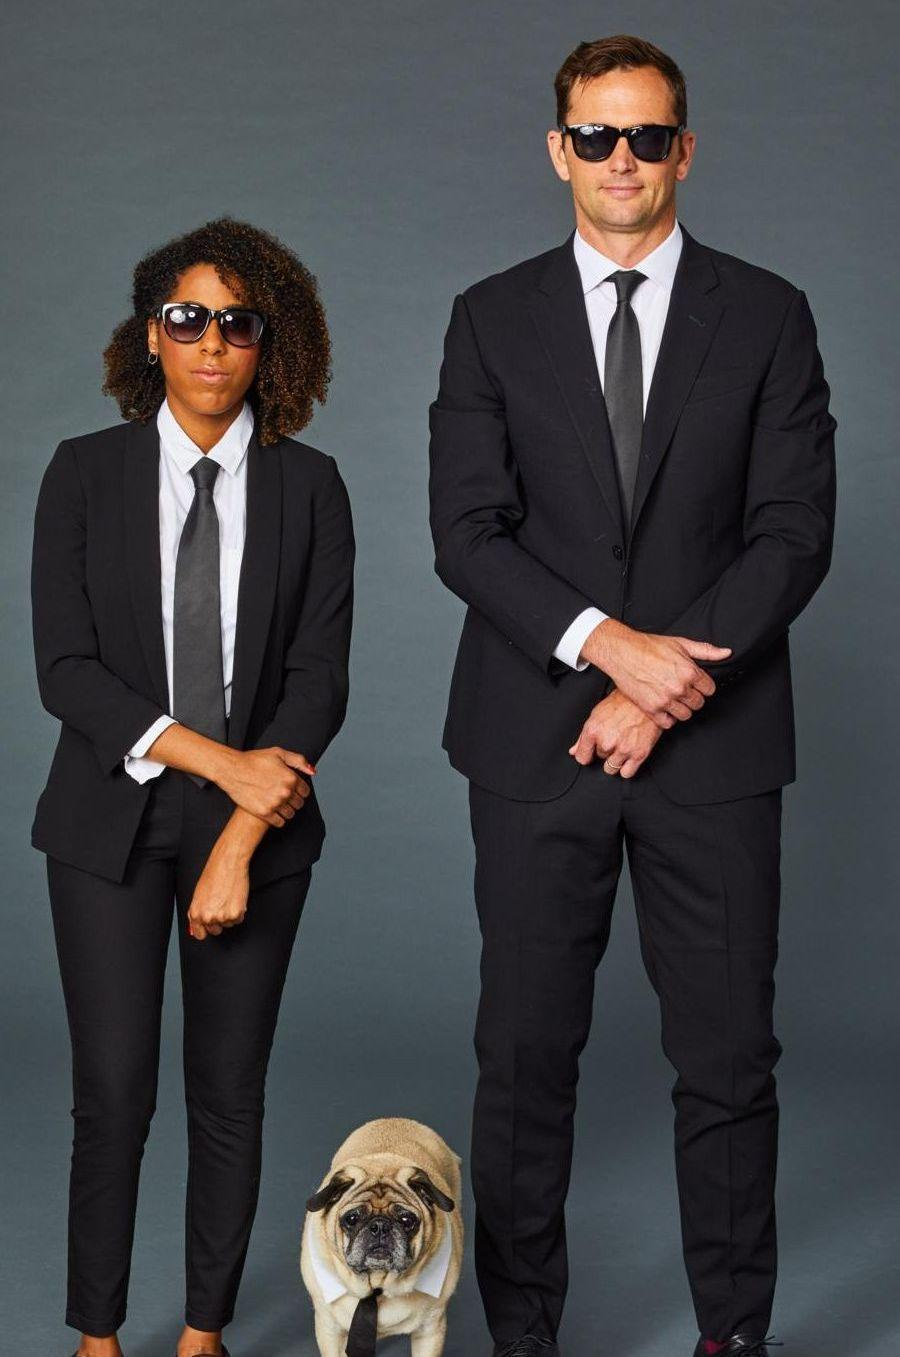 """<p>Whether you go with your significant other, friend, or simply by yourself, this intimidating costume only requires some sunglasses and a black suit. </p><p><a class=""""link rapid-noclick-resp"""" href=""""https://www.amazon.com/Joopin-Polarized-Sunglasses-Designer-packaging/dp/B01NAHV221?tag=syn-yahoo-20&ascsubtag=%5Bartid%7C10070.g.490%5Bsrc%7Cyahoo-us"""" rel=""""nofollow noopener"""" target=""""_blank"""" data-ylk=""""slk:SHOP BLACK SUNGLASSES"""">SHOP BLACK SUNGLASSES</a> </p>"""